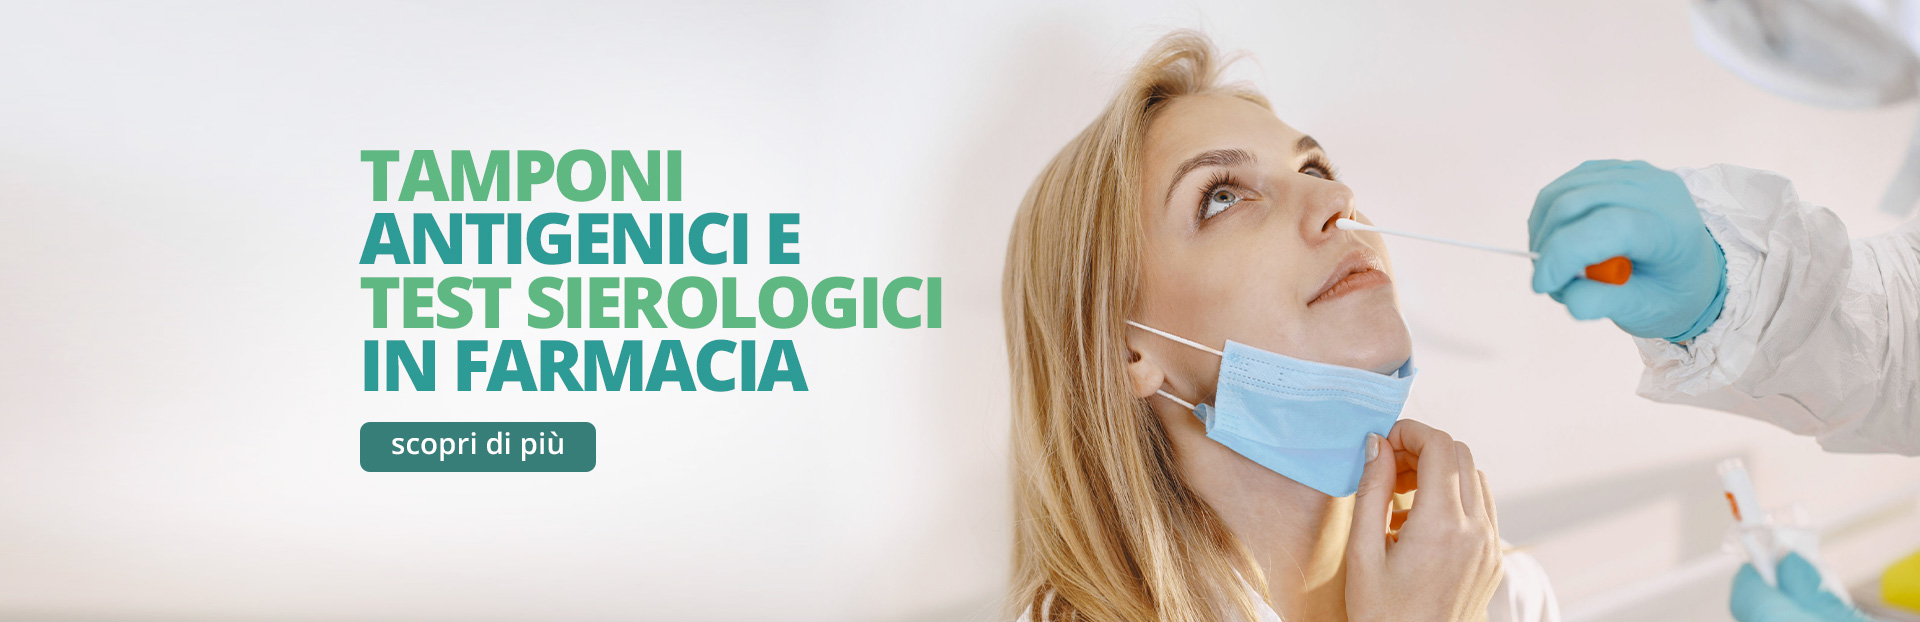 Tamponi antigenici e test sierologico in Farmacia